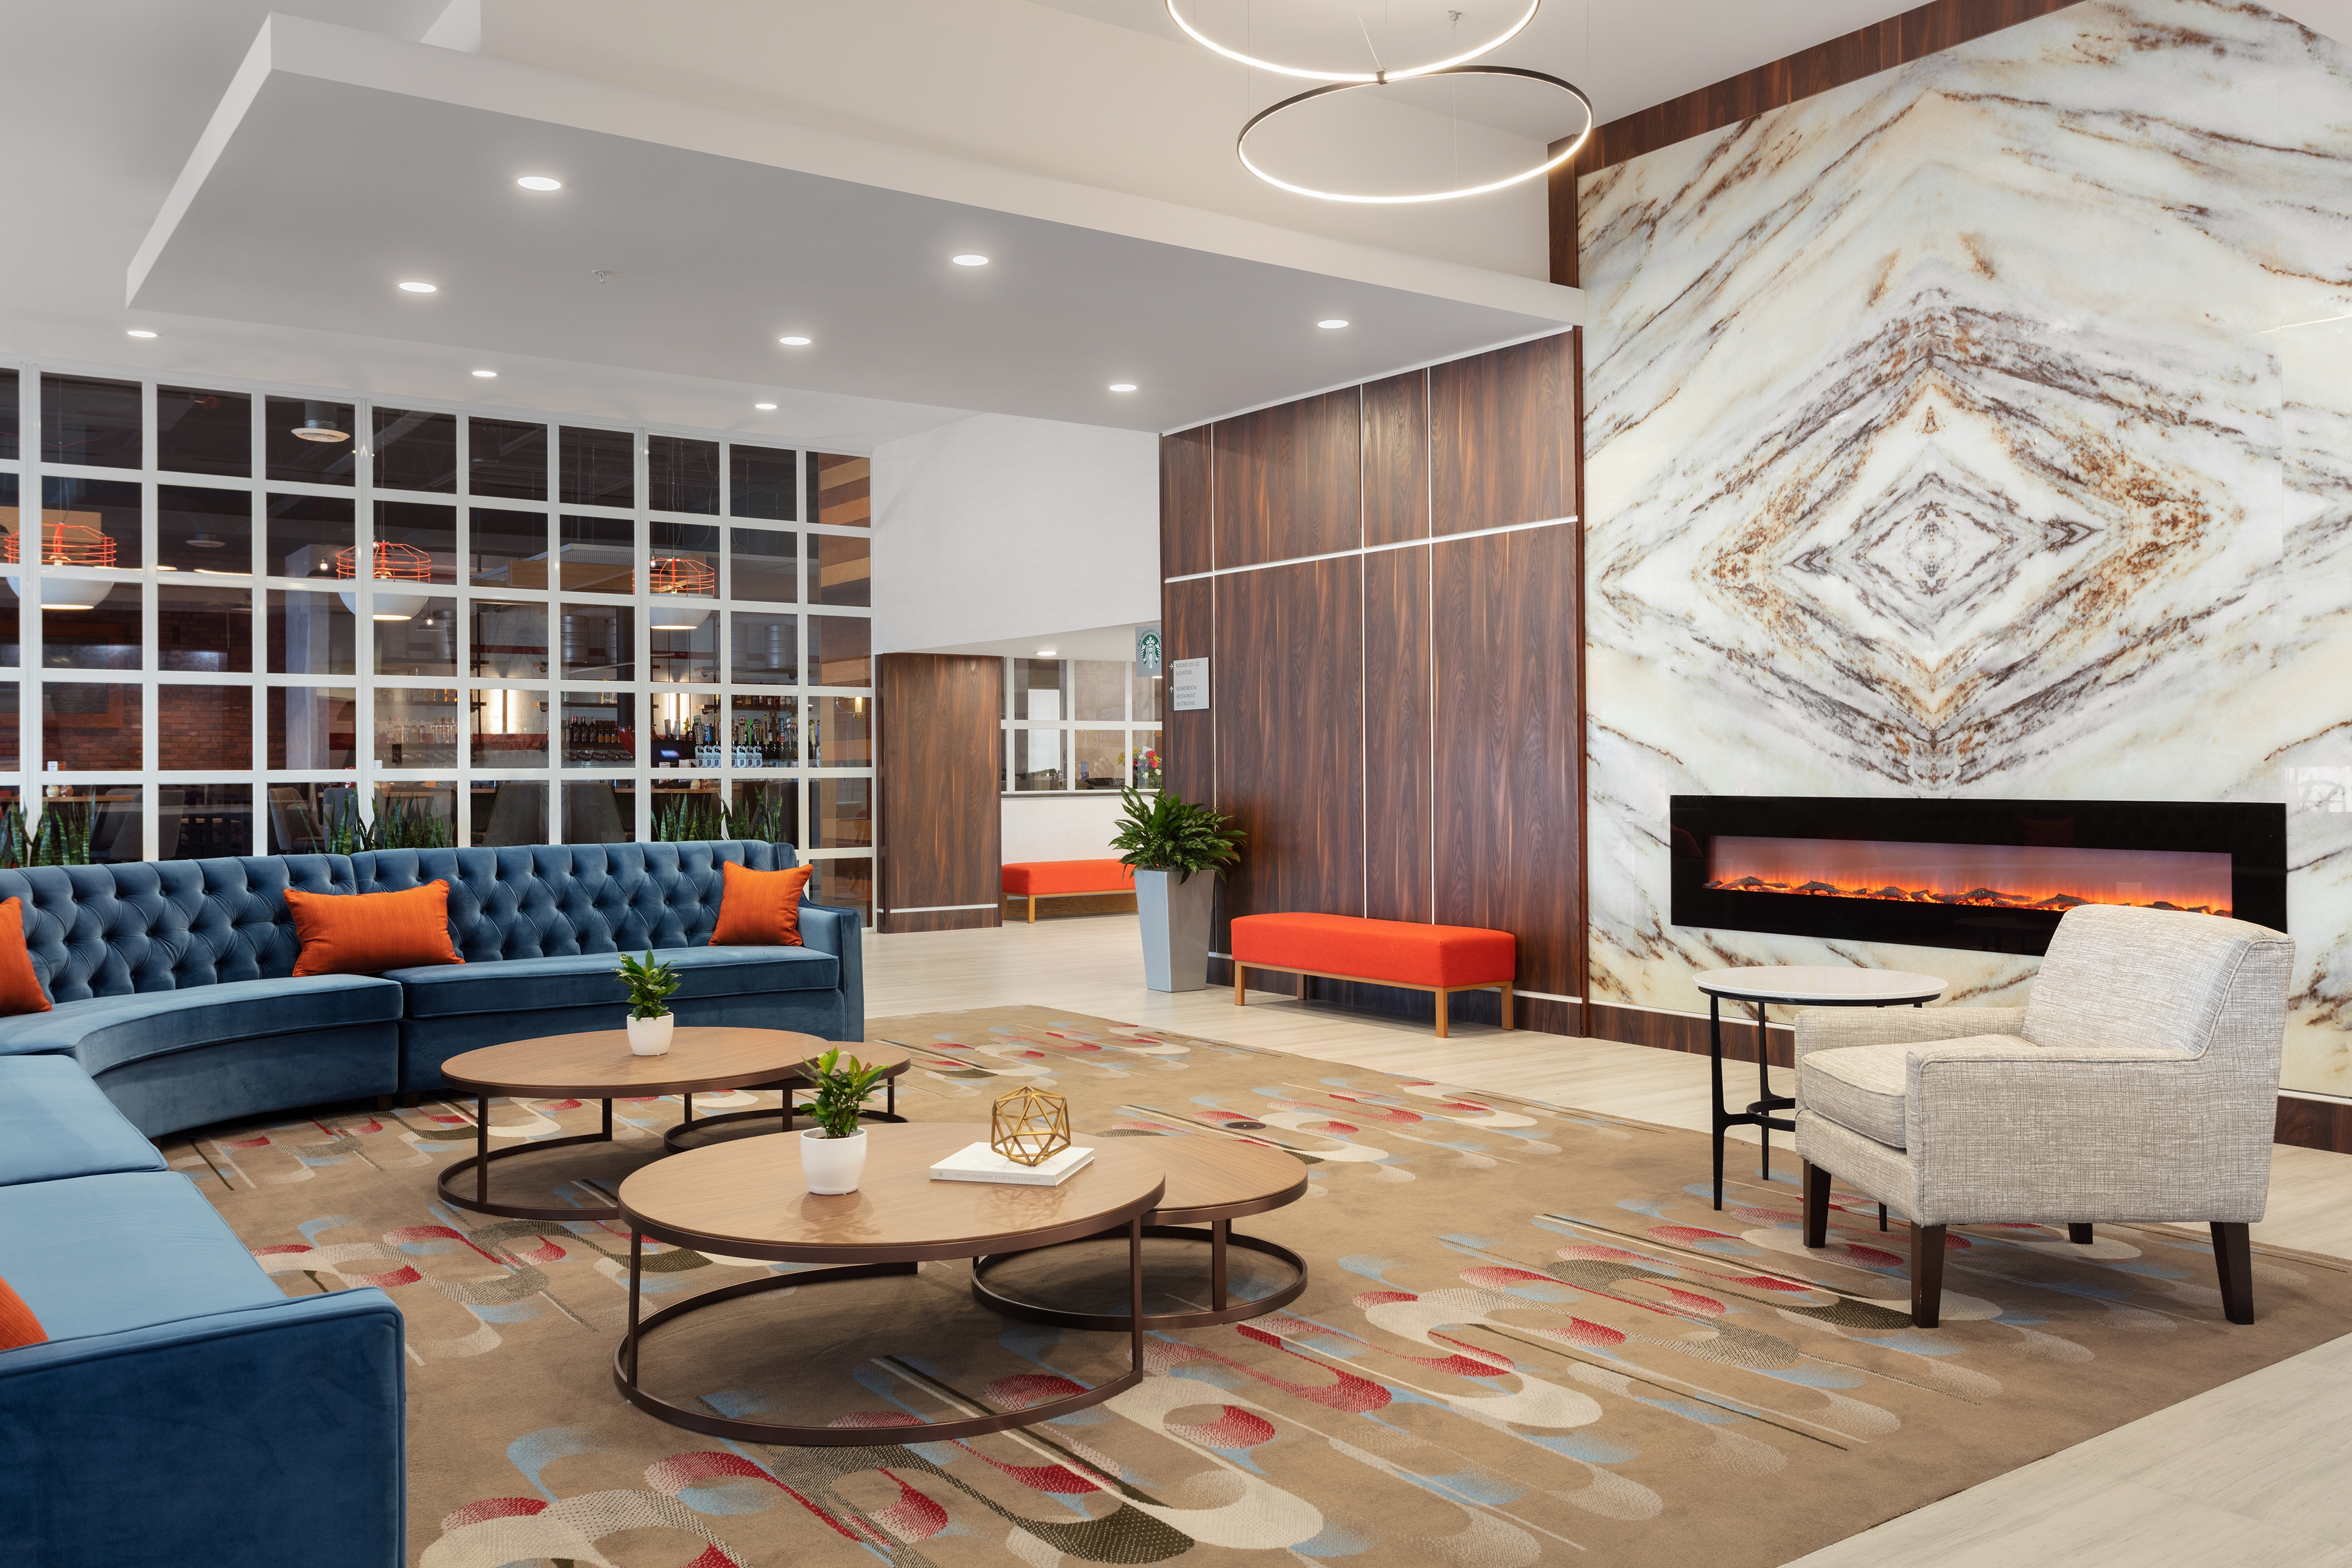 , Delta Hotels by Marriott Expands Global Presence with Indianapolis Airport Opening, For Immediate Release | Official News Wire for the Travel Industry, For Immediate Release | Official News Wire for the Travel Industry